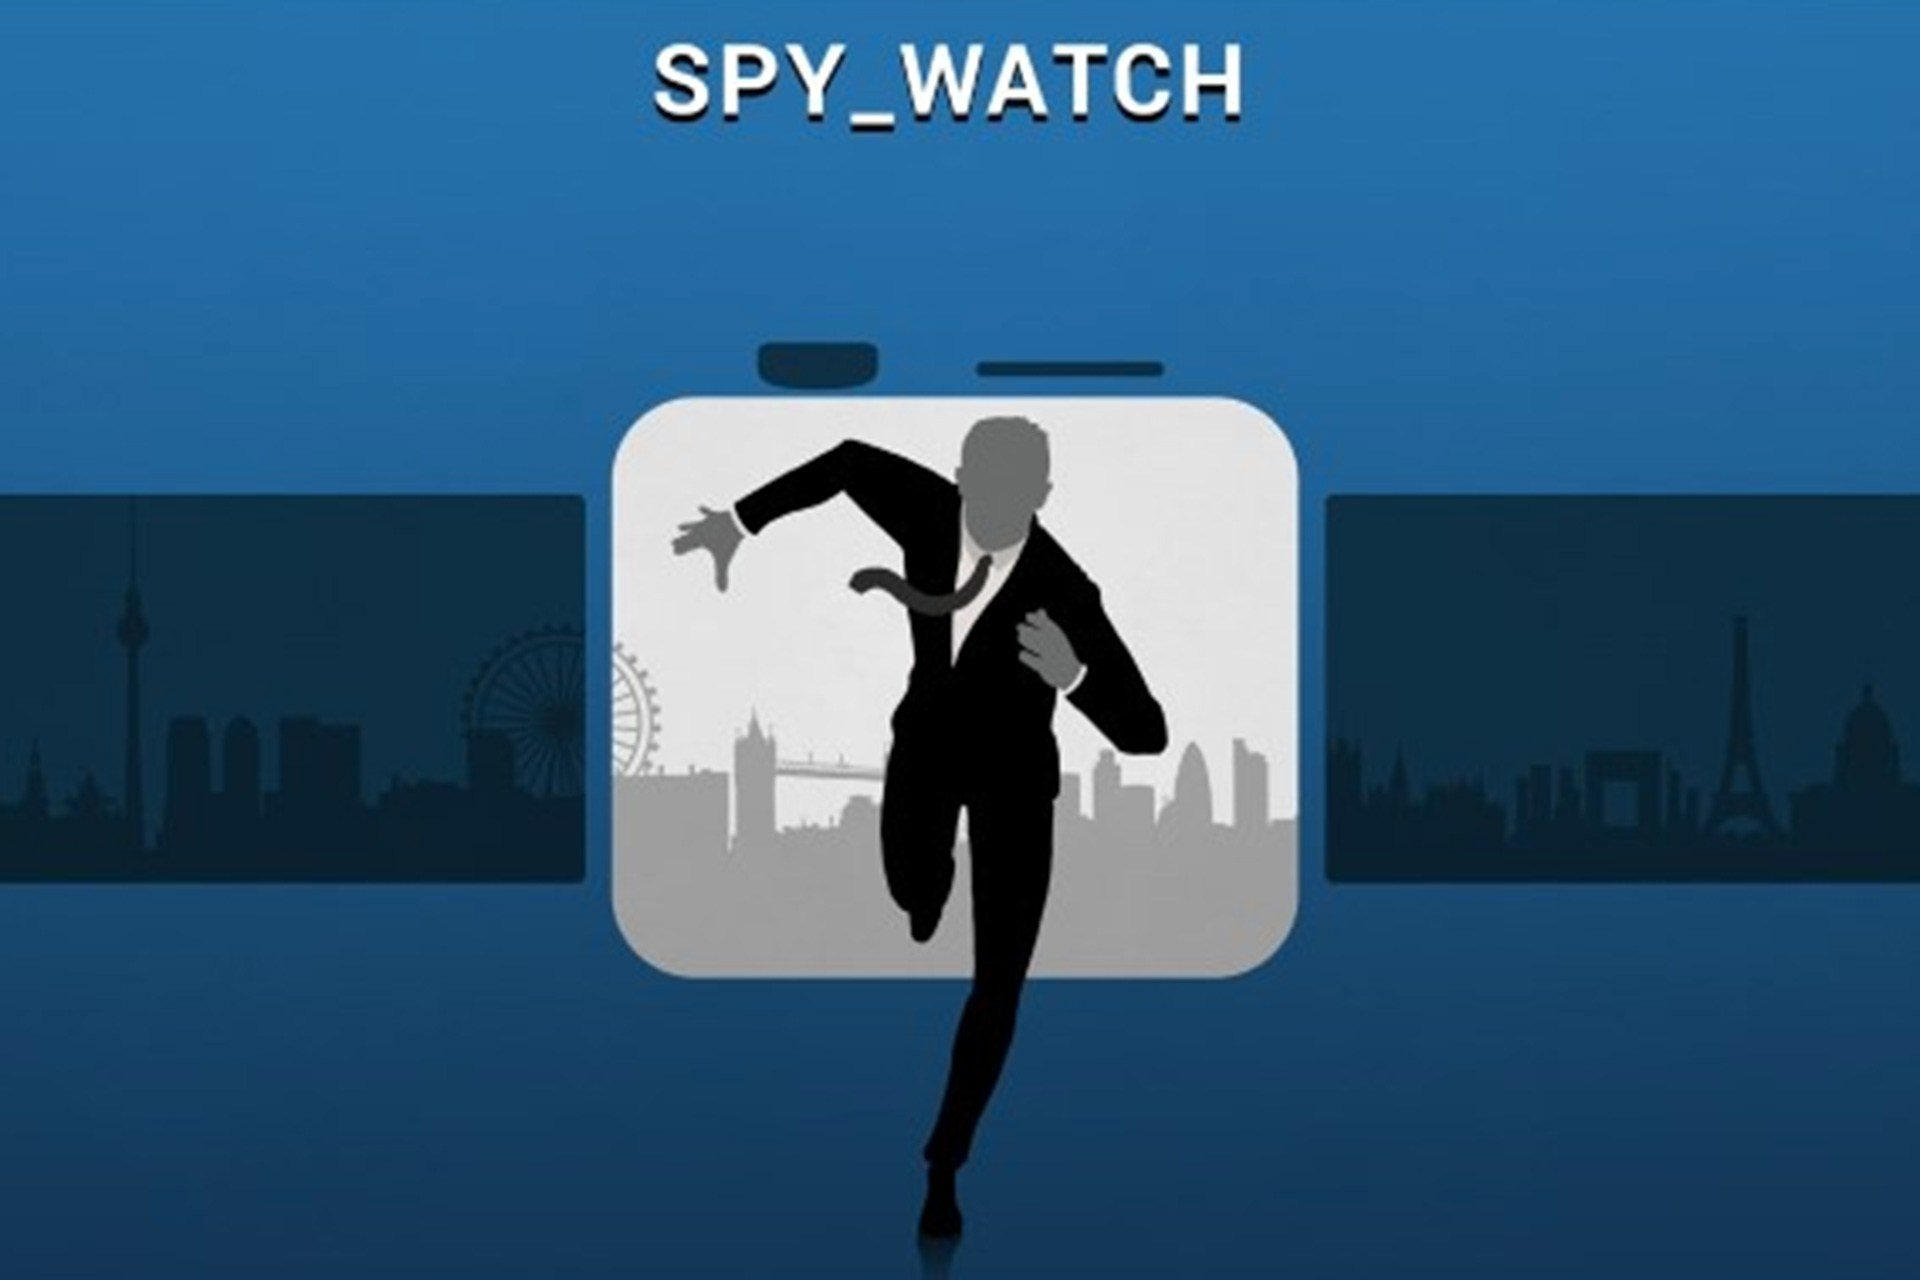 Spy_Watch for Apple Watch Official Trailer by Bossa Studios